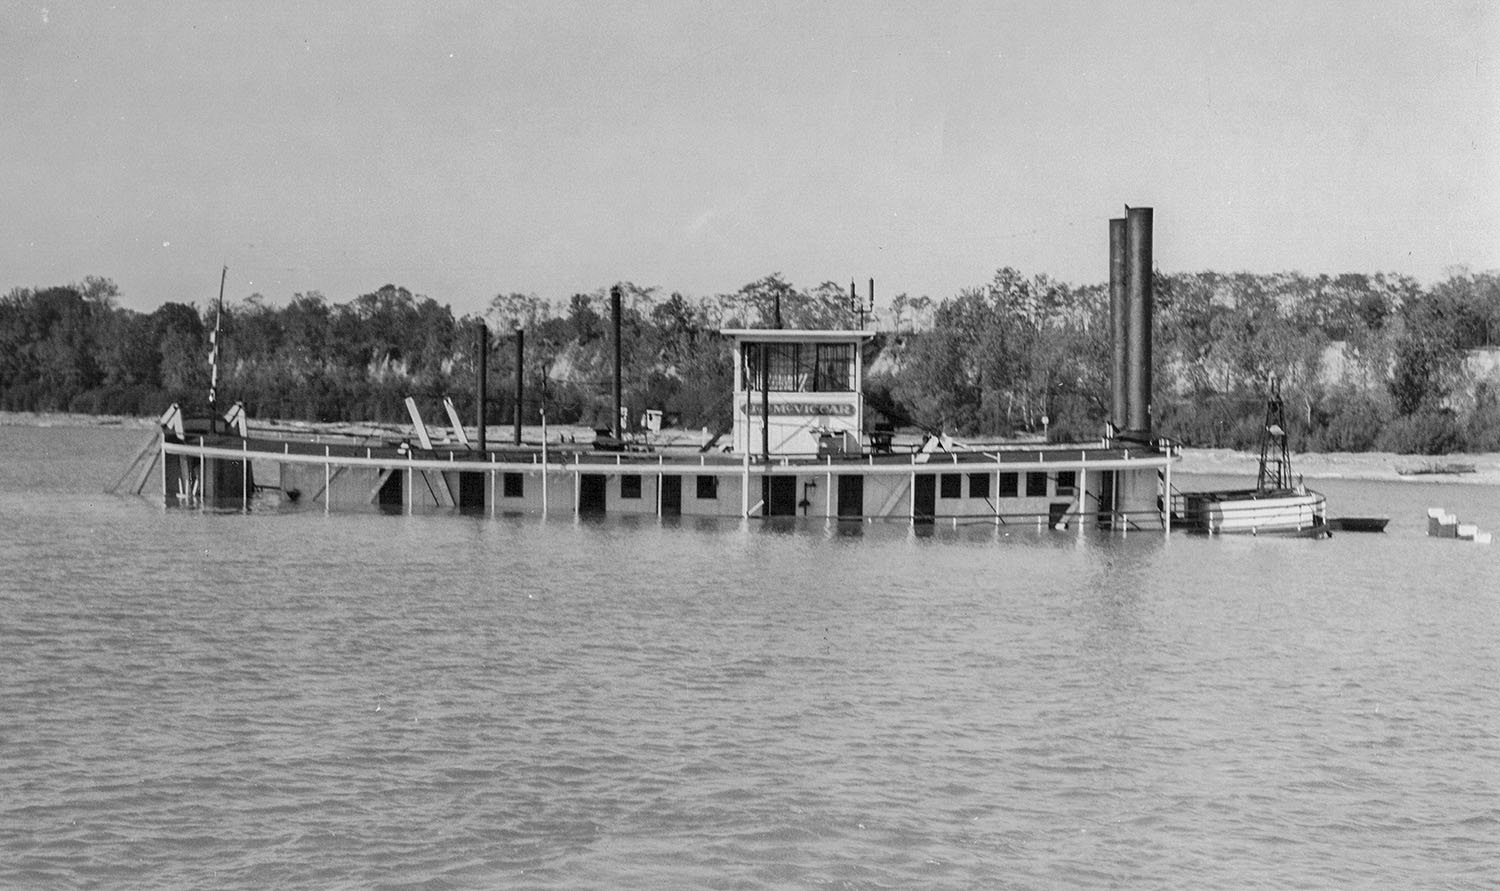 The steam towboat J.J. McViccar sunk near Paducah, Ky., in October 1941. (Keith Norrington collection)